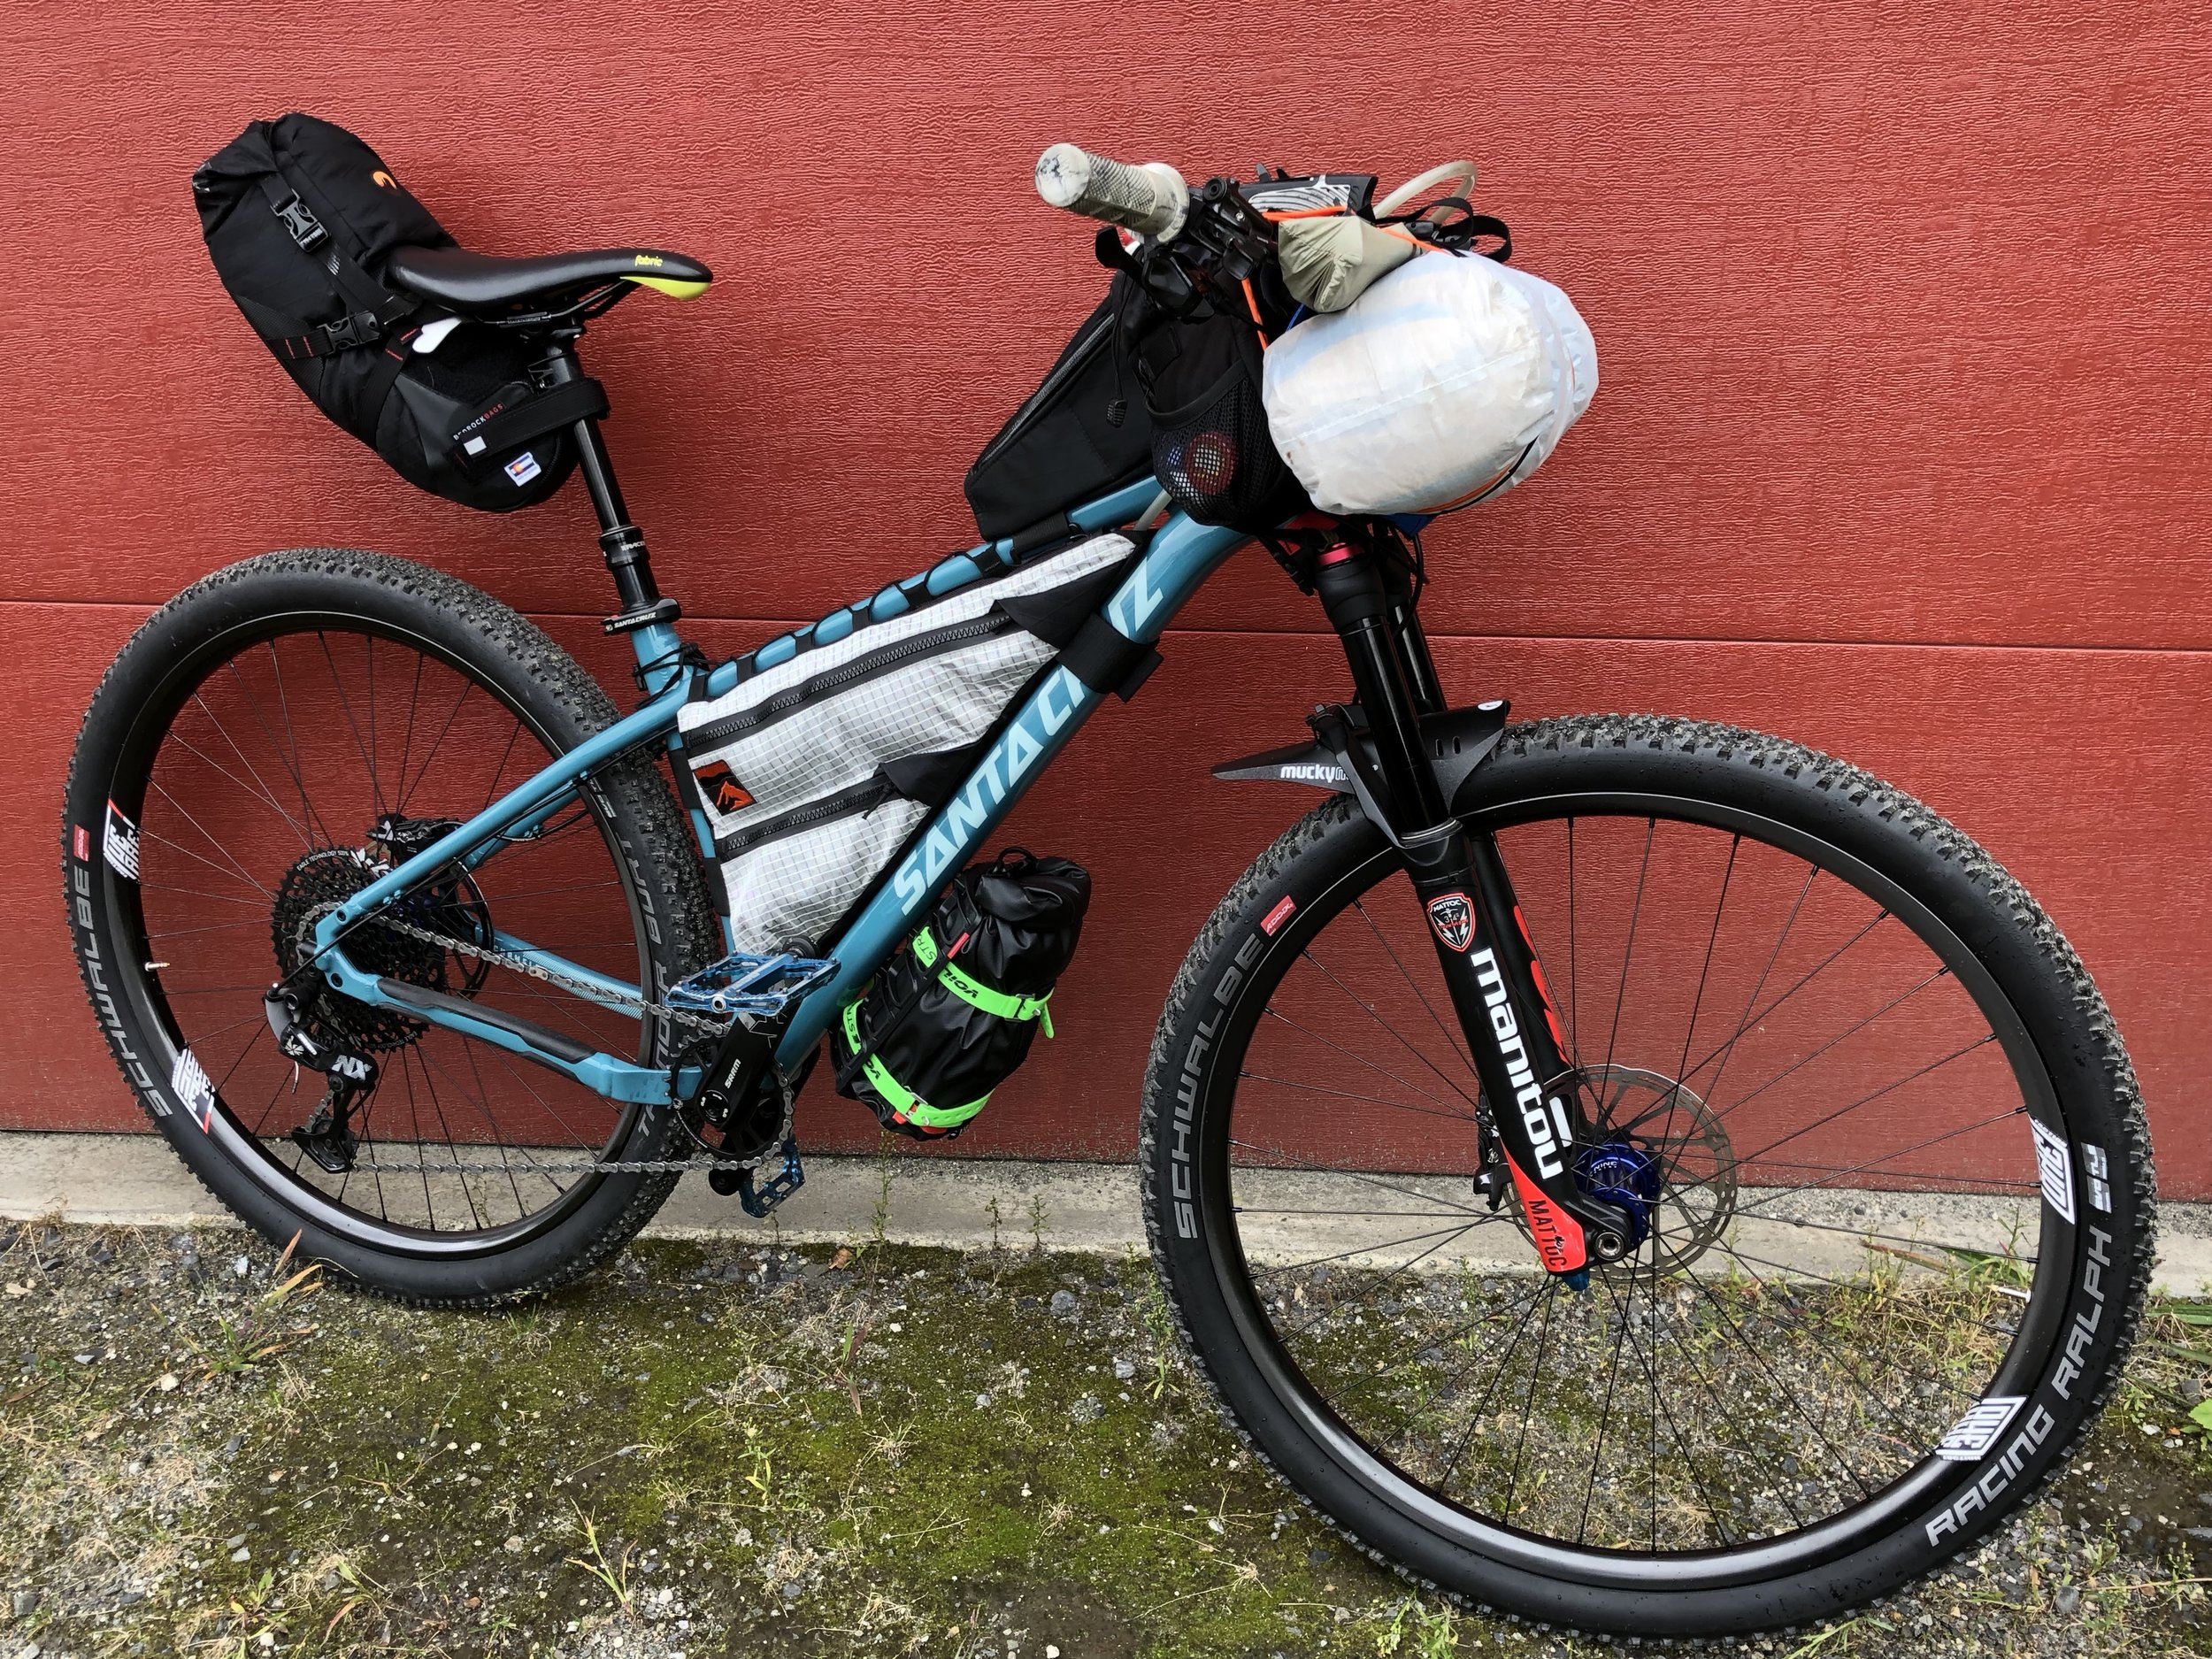 Same bike in Bikepacking mode with 29 x 2.25's and short fork.